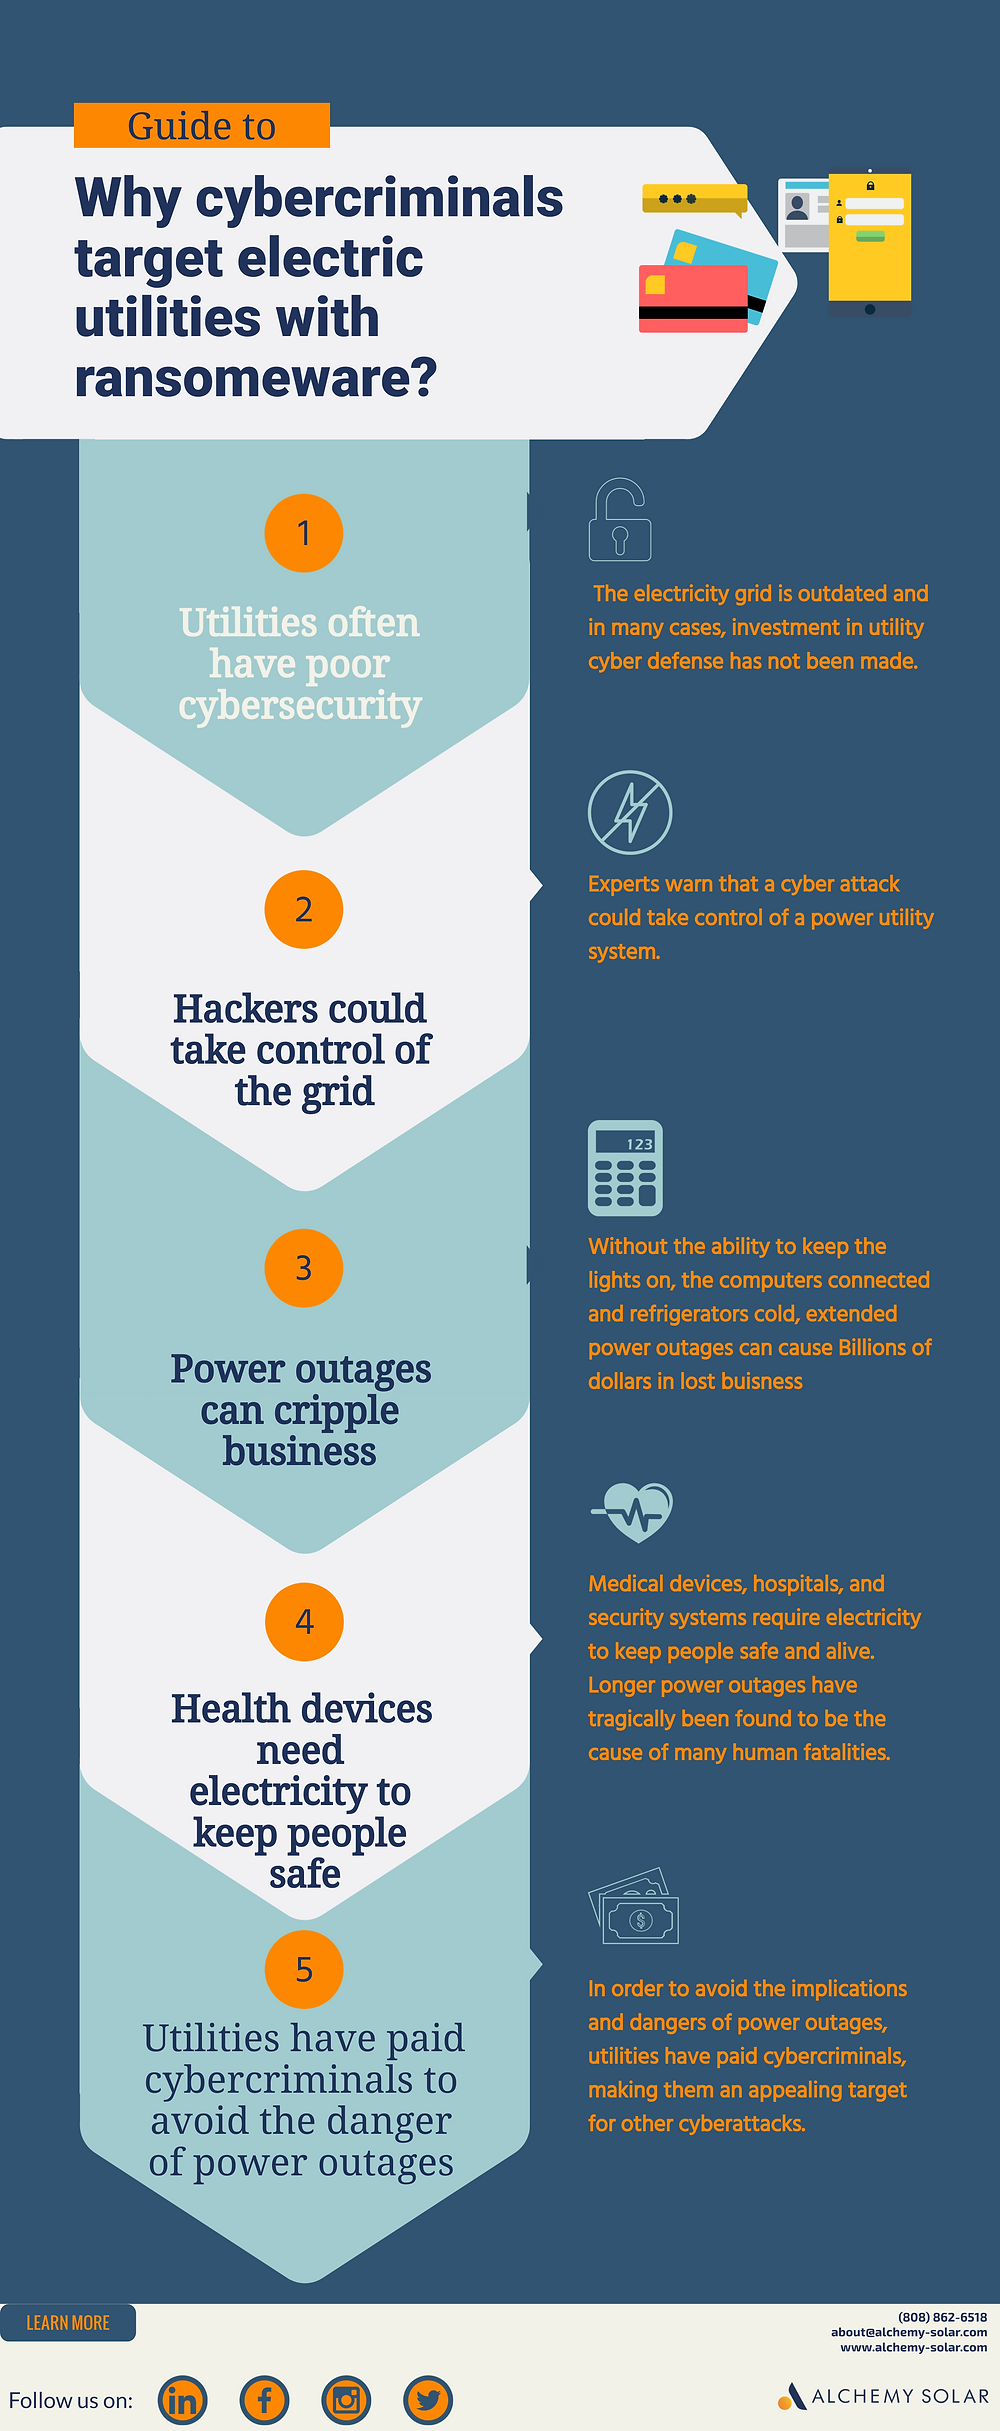 What makes the power grid a target for ransomware and cyber attacks